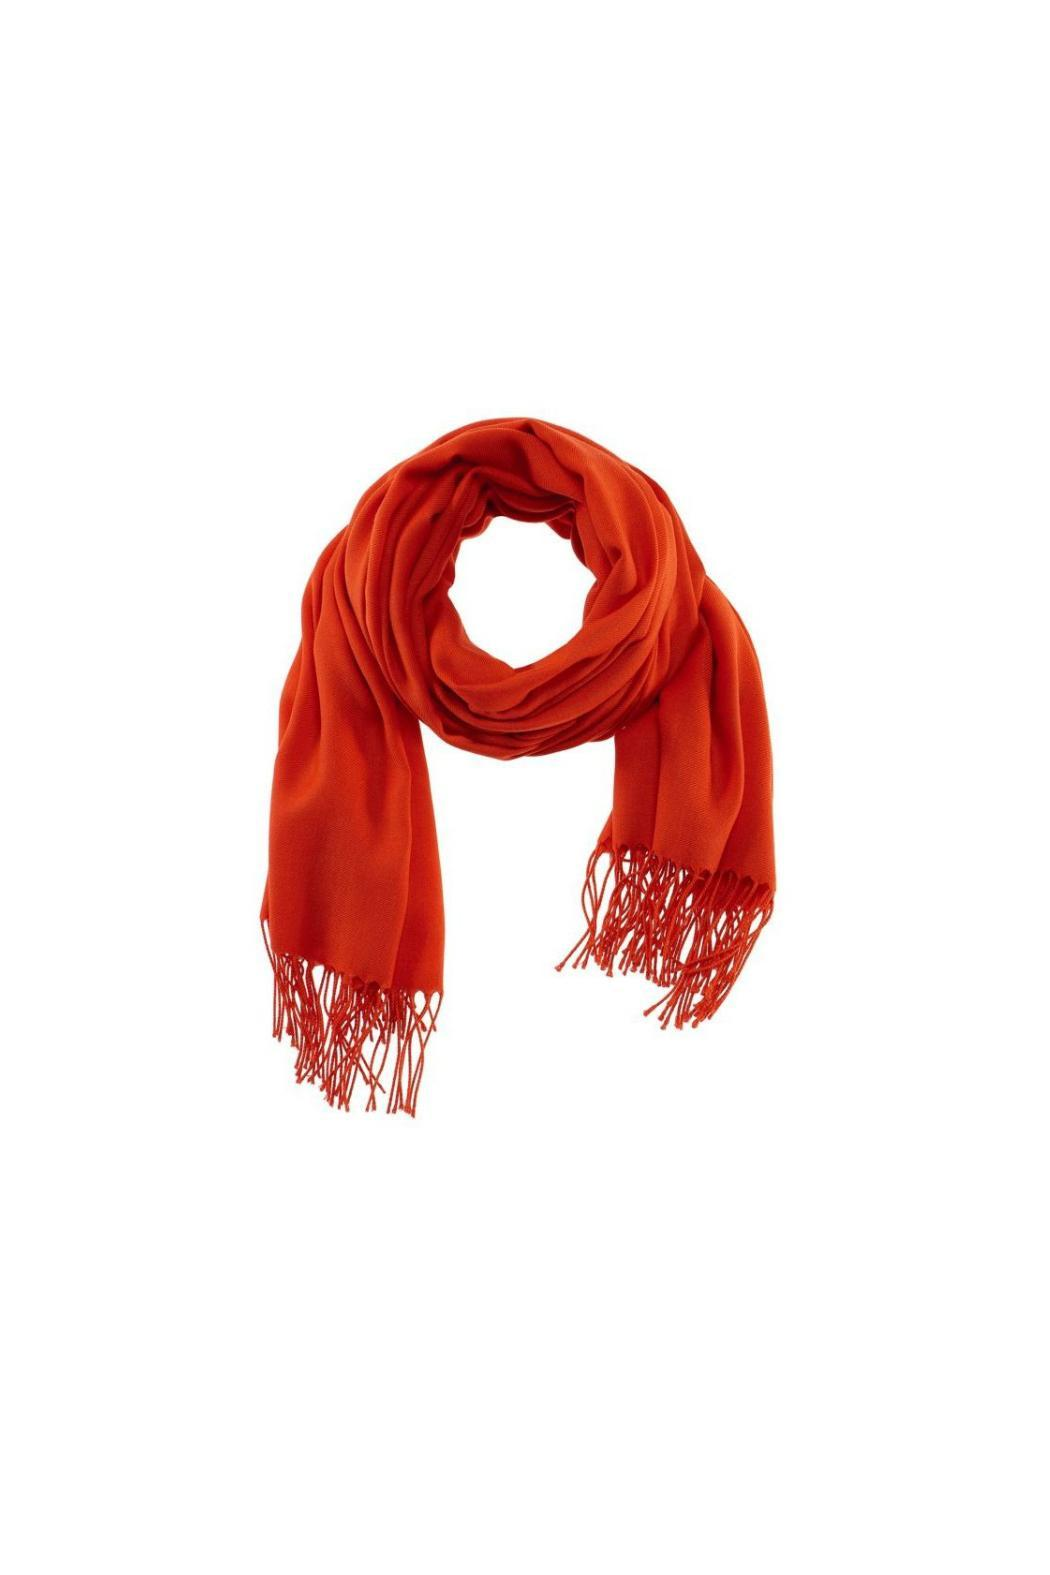 6th Borough Boutique Orange Pashmina Scarf - Main Image